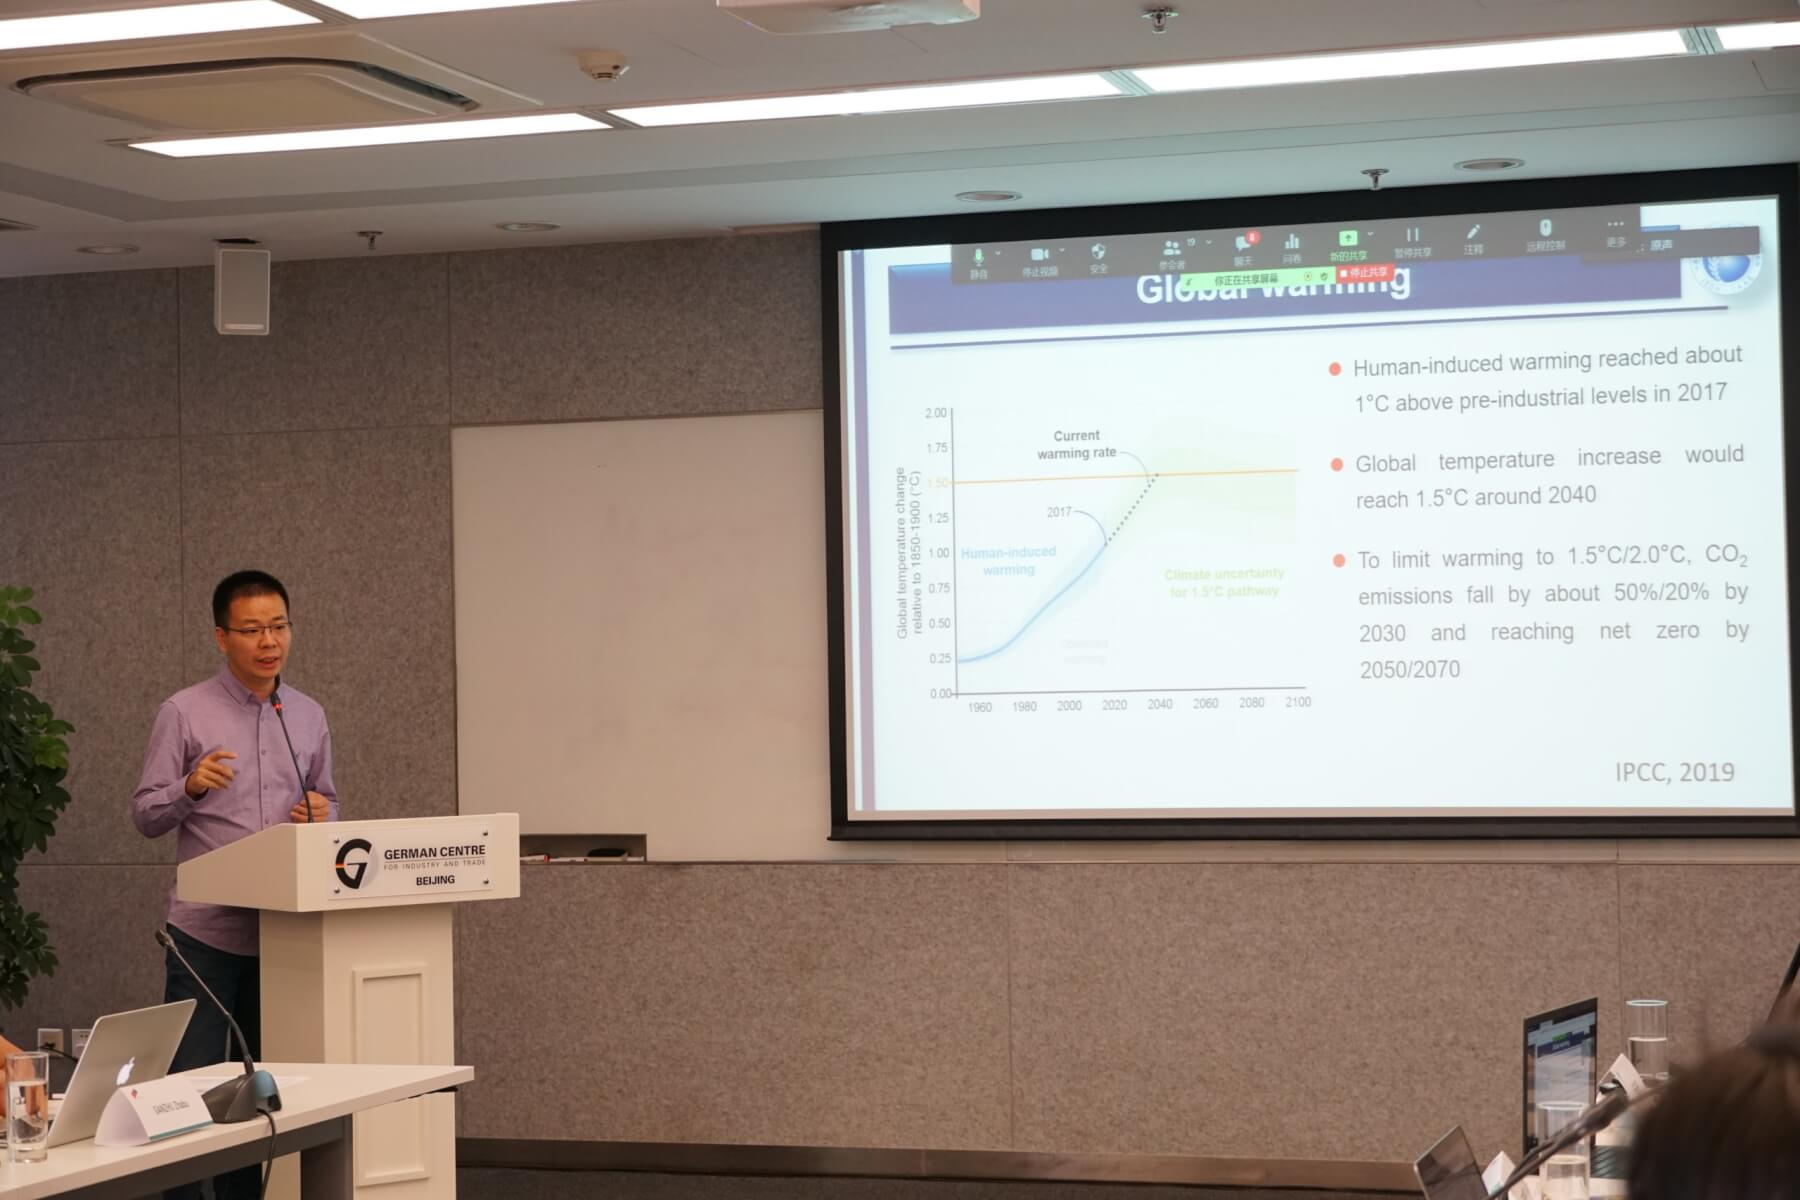 Mr. Wang Bin presents his findings on increasing rice yield wahile reducing greenhouse gas emissions.